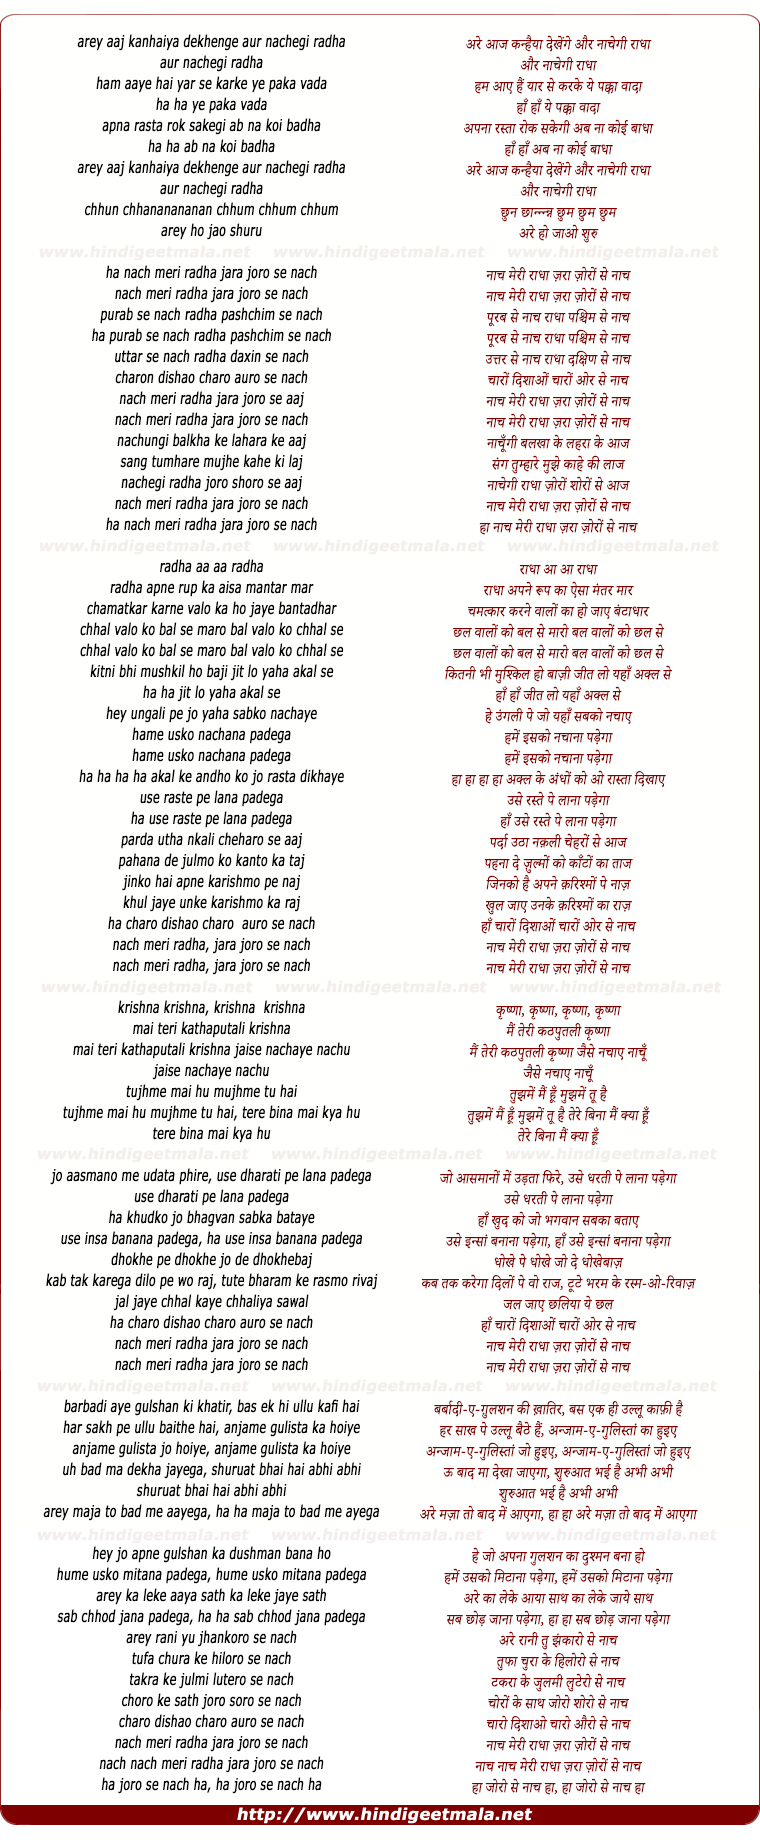 lyrics of song Are Aaj Kanhaiya Dekhenge Aur Nachegee Radha